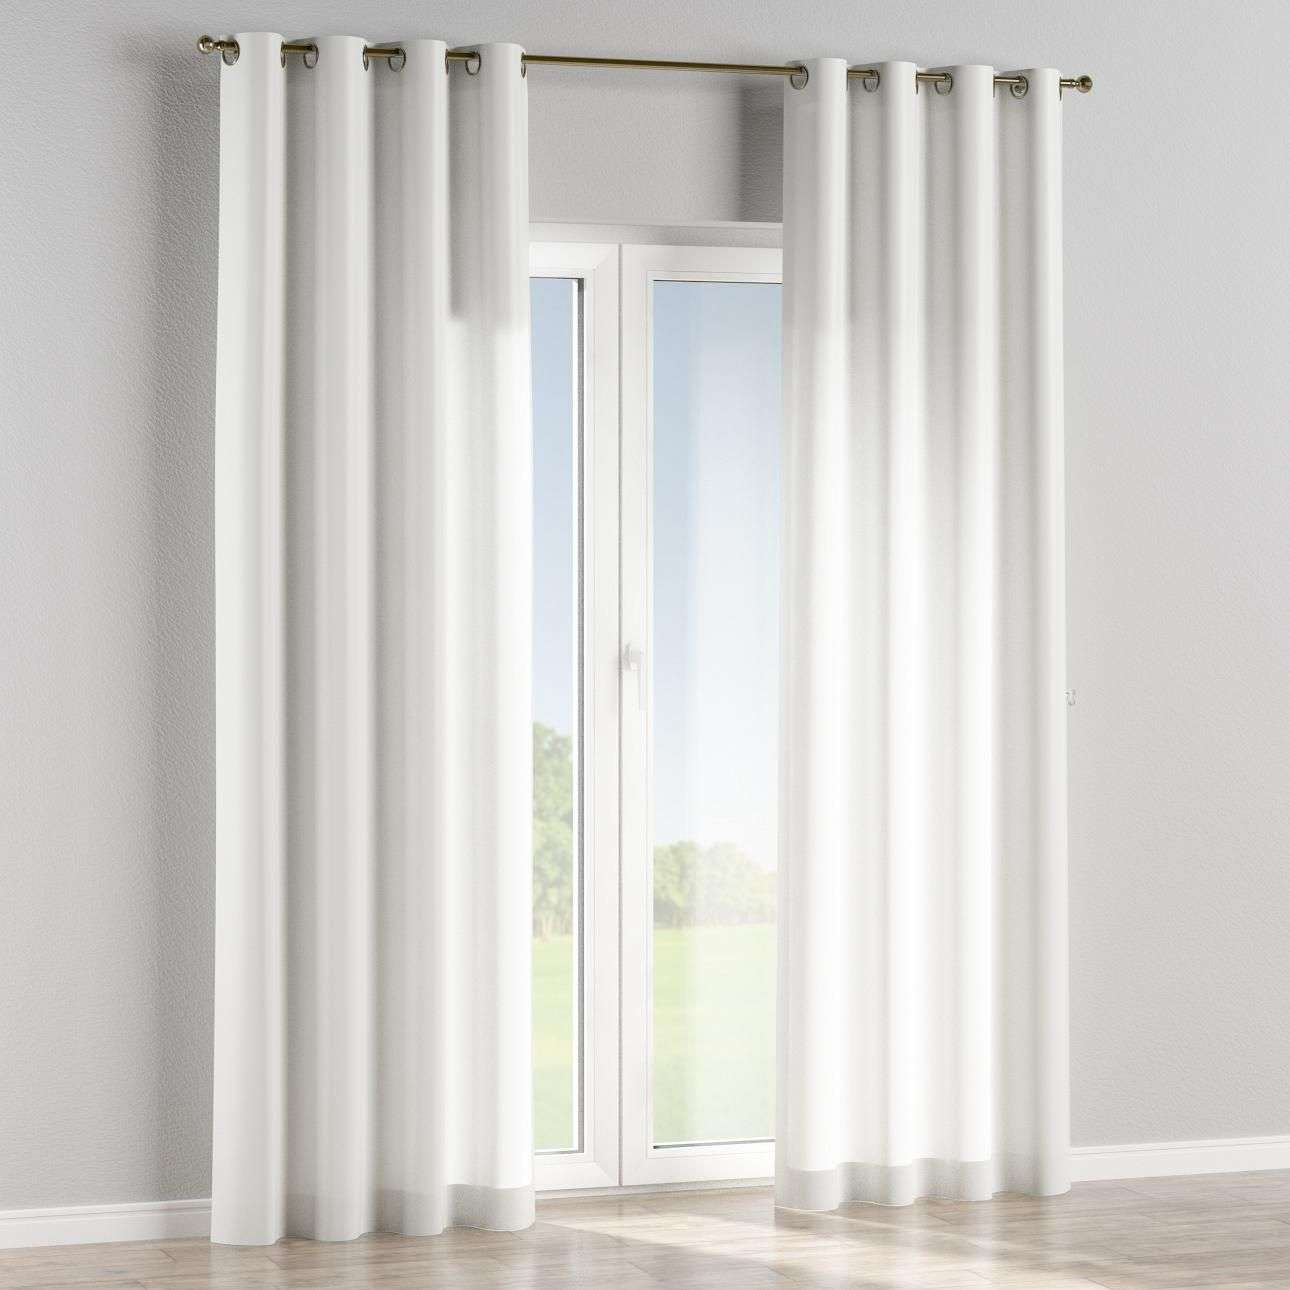 Eyelet lined curtains in collection Rustica, fabric: 140-31